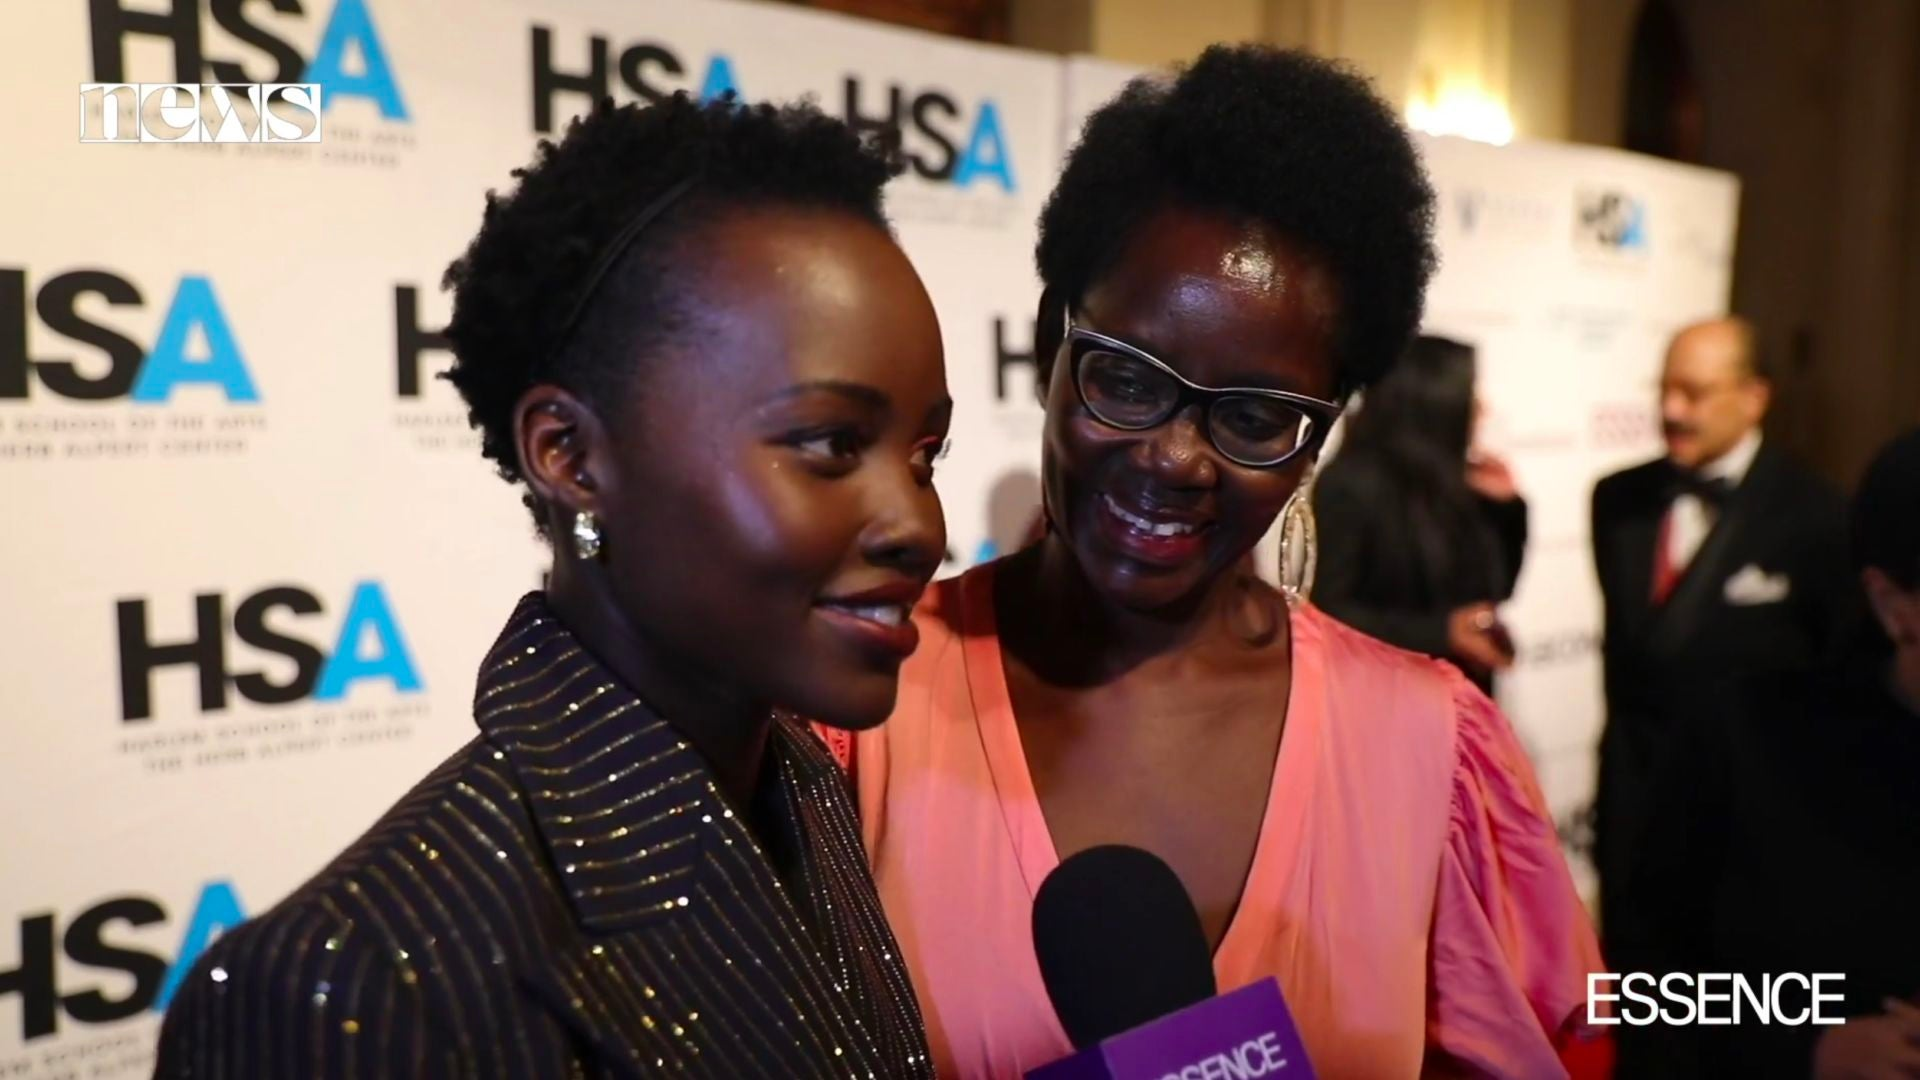 VIDEO: This Beautiful Moment With Lupita Nyong'o And Her Mom On The Red Carpet Will Make Your Day